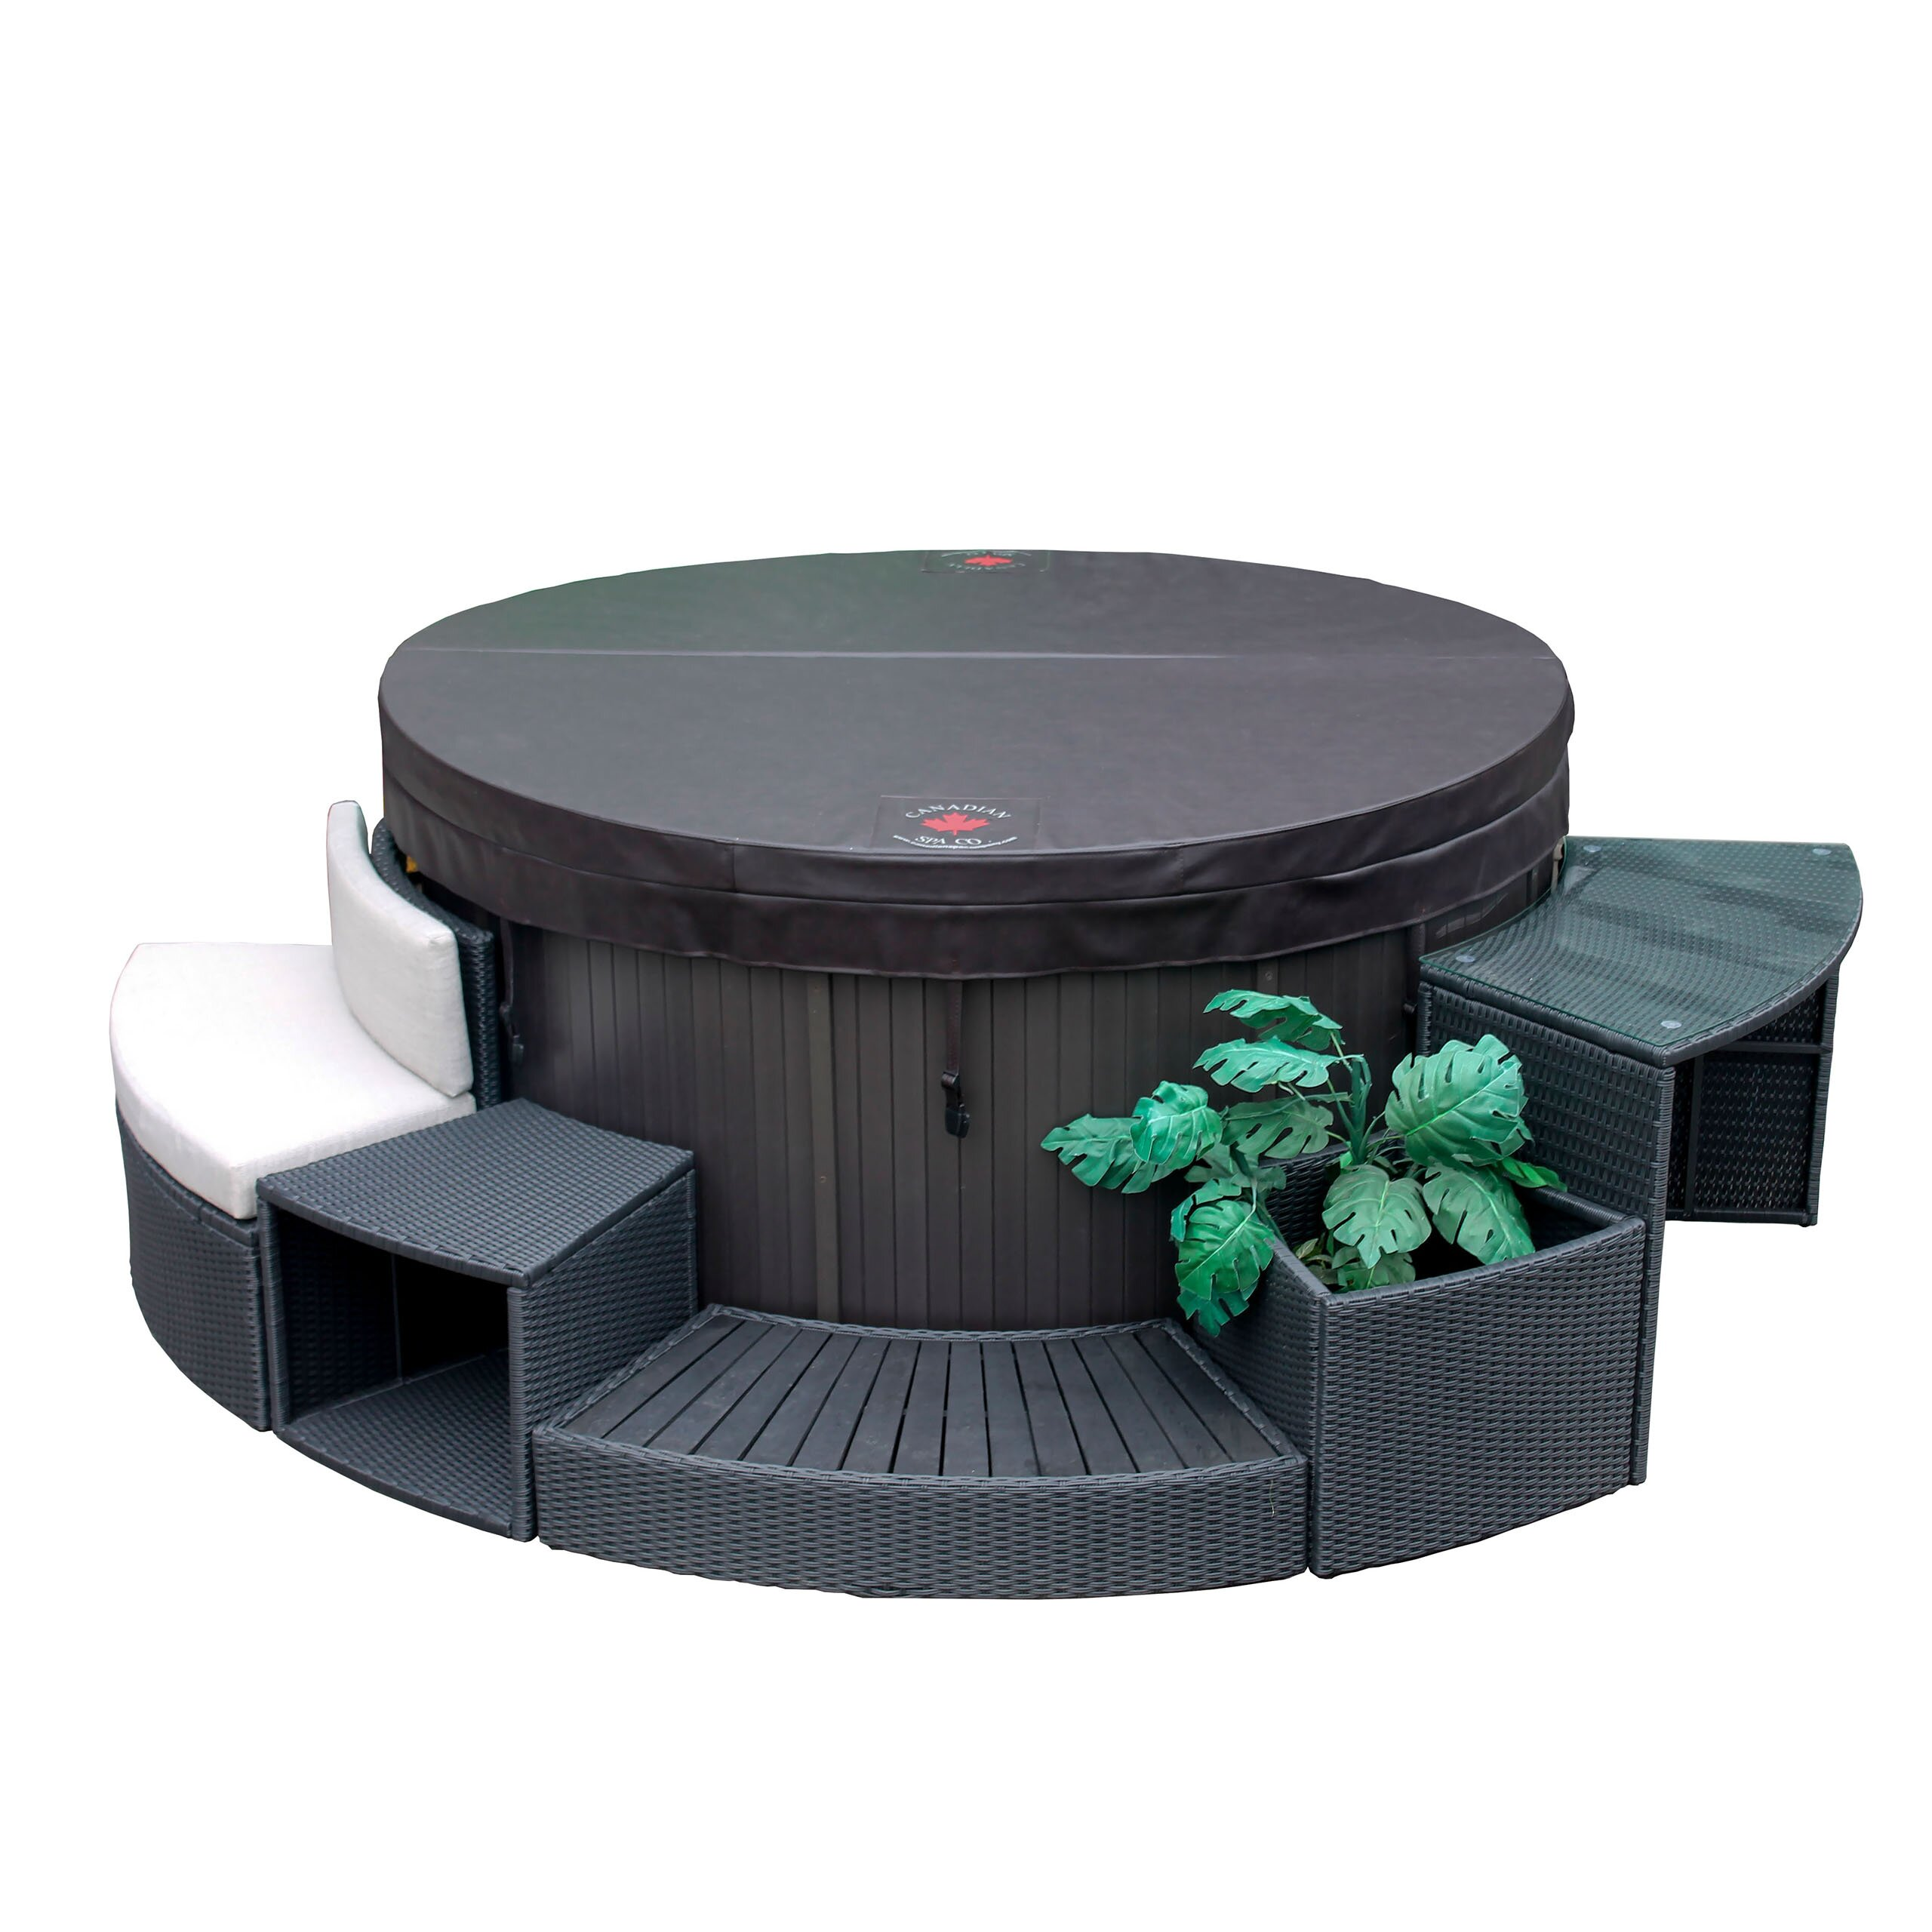 Canadian spa co round spa surround furniture 5 piece set for Spa furniture